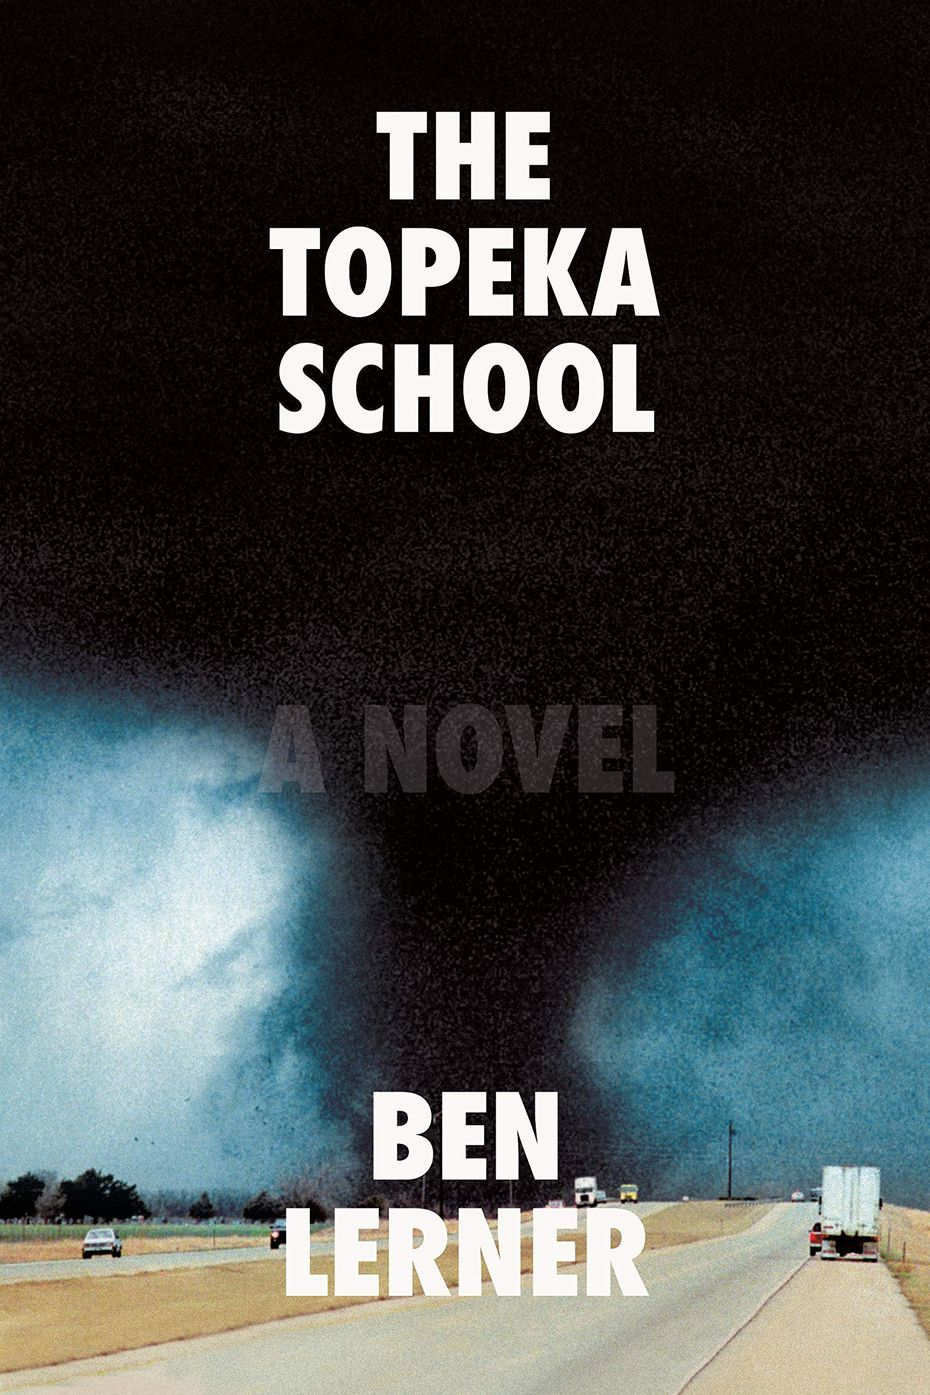 The Topeka School by Ben Lerner manages to explore the condition of the whole country with one story about a few characters in a small town.